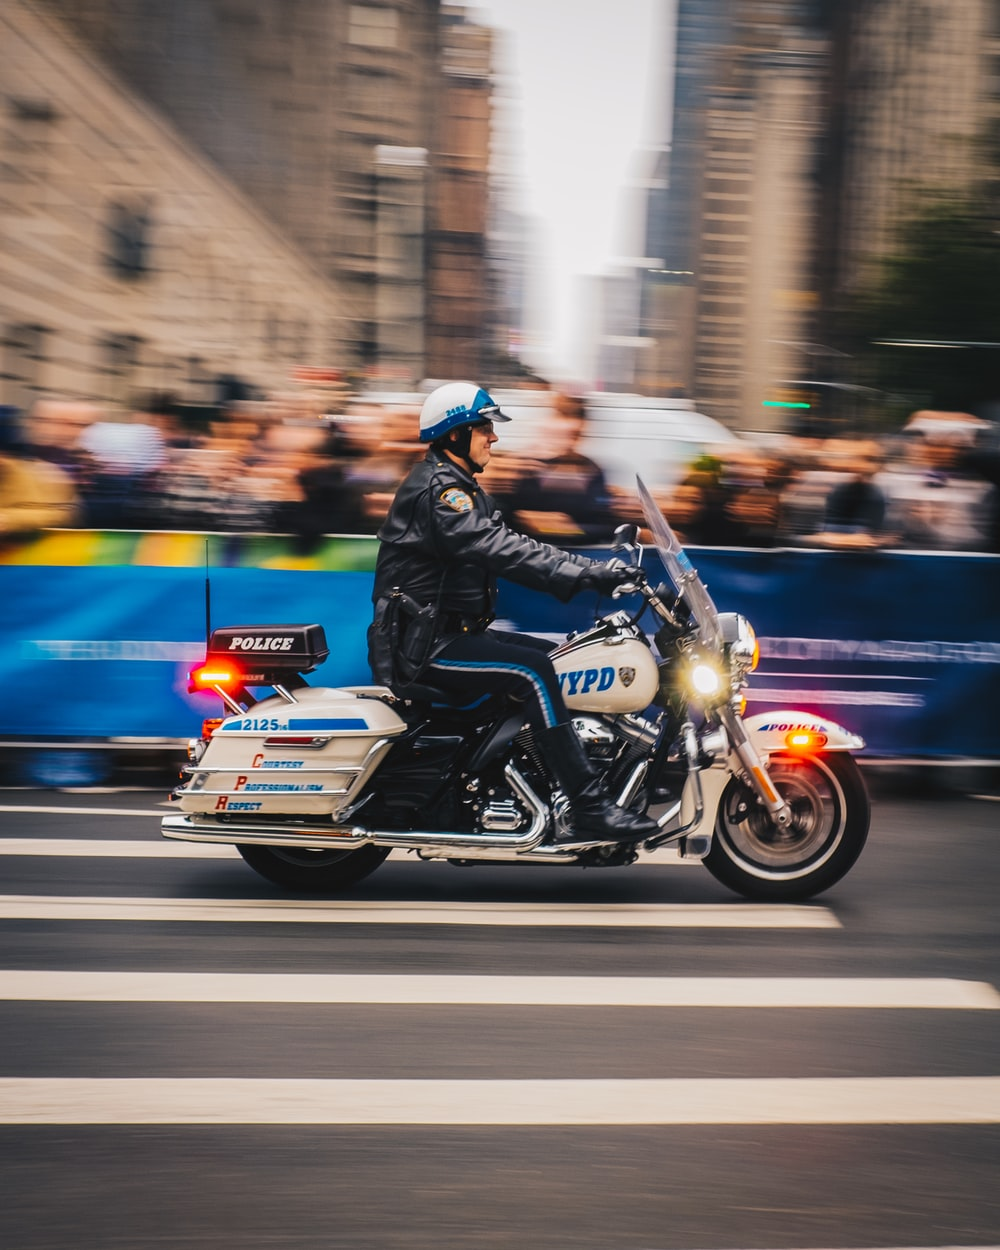 policeman riding on white motorcycle